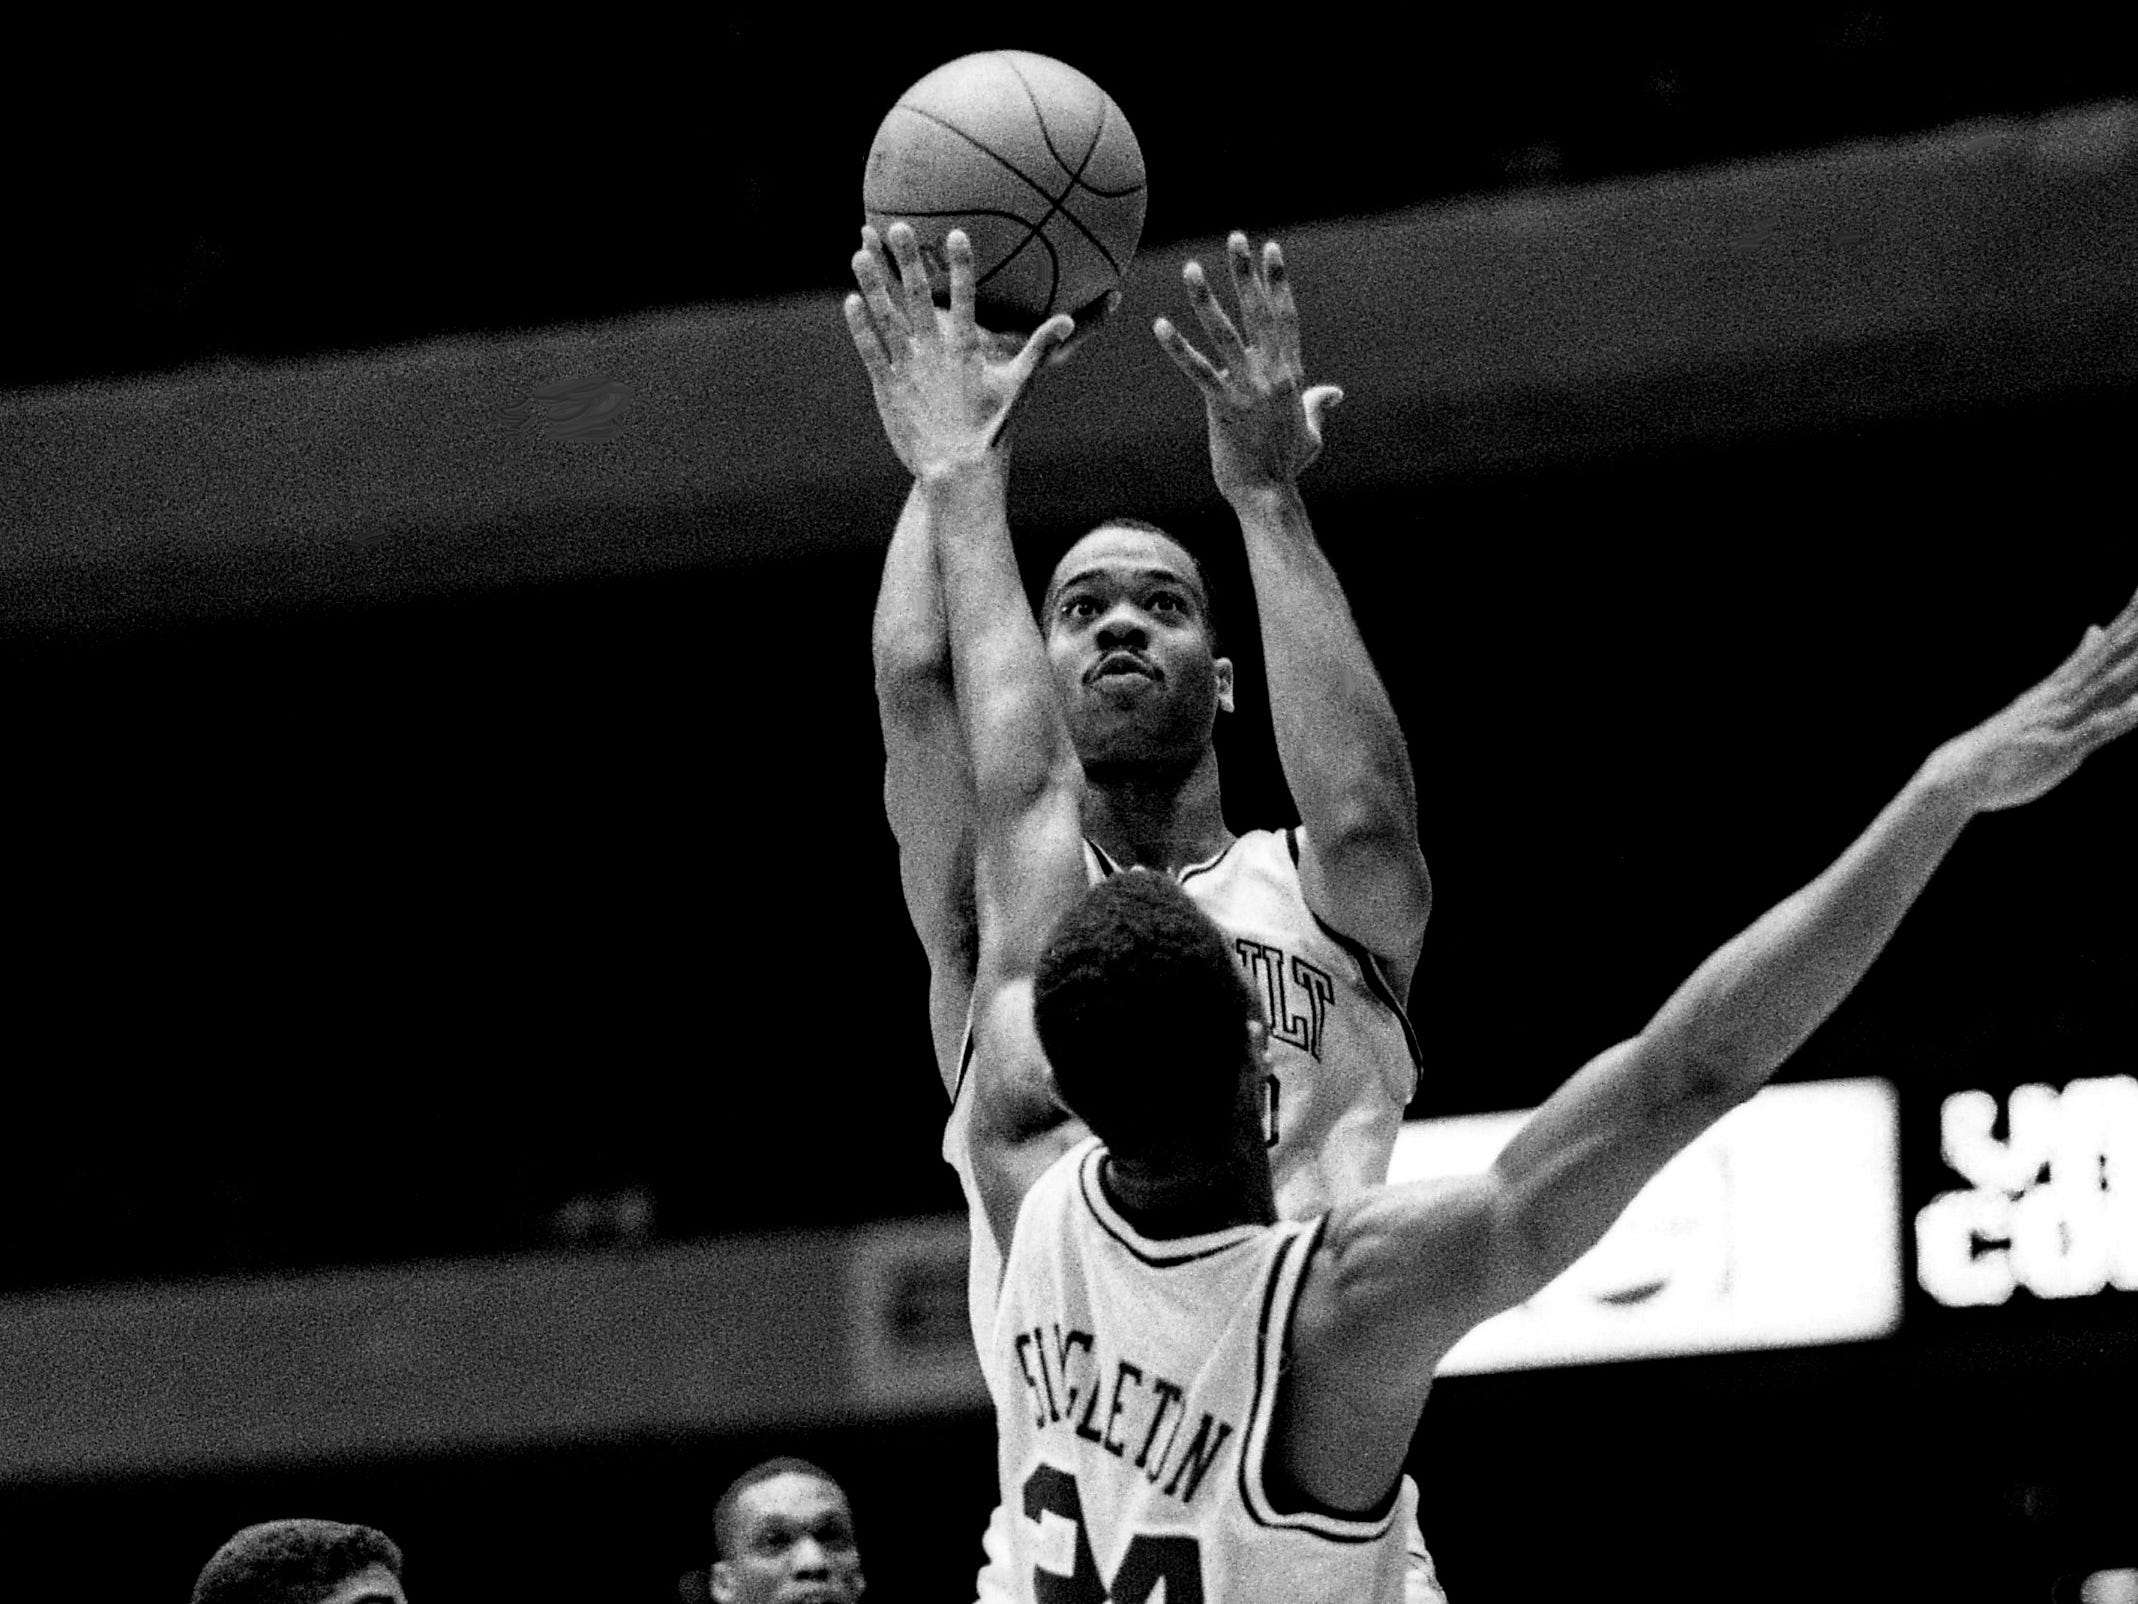 Vanderbit's Eric Reid shoots over LSU's Vernel Singleton (24) in the first half. The Commodores blew away LSU 108-74 before a deafening partisan crowd of 15,646 at Memorial Gym on Feb. 18, 1989.